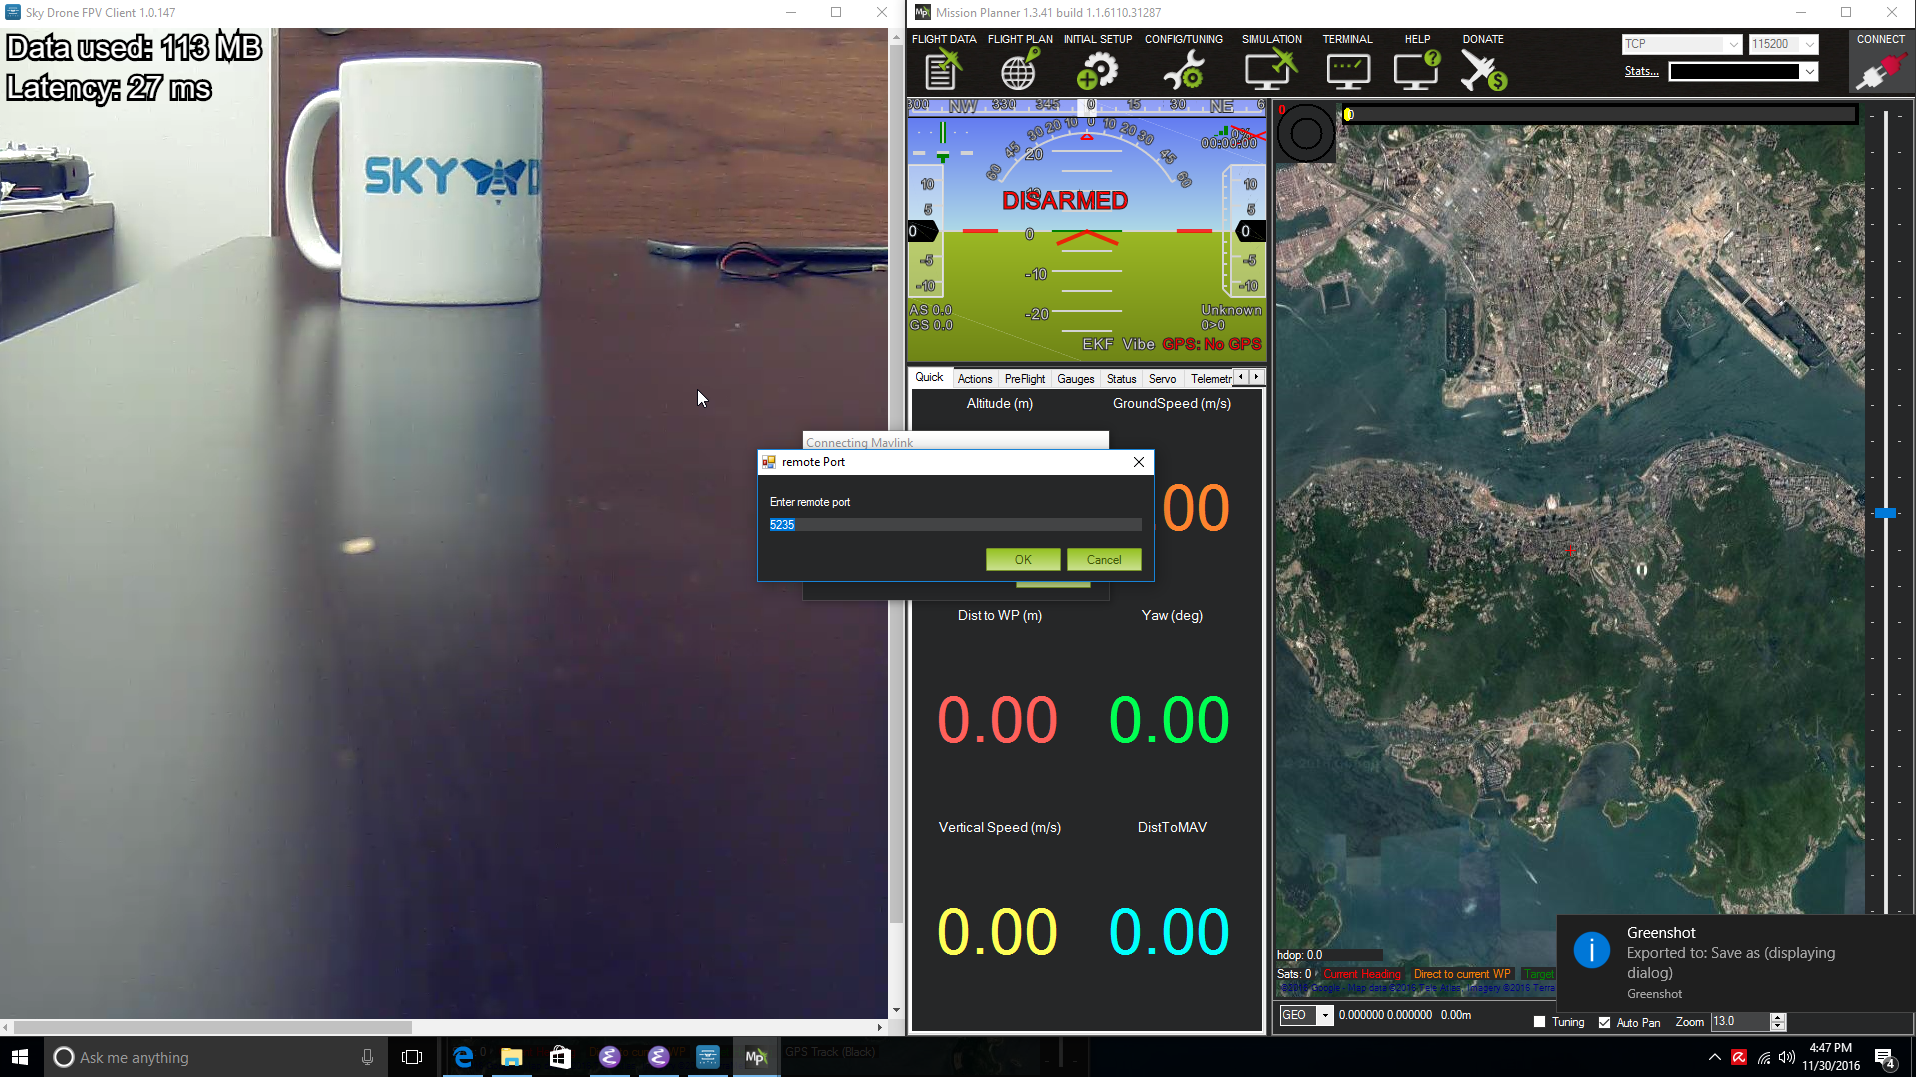 Using Sky Drone FPV with Mission Planner for full 4G/LTE drone control